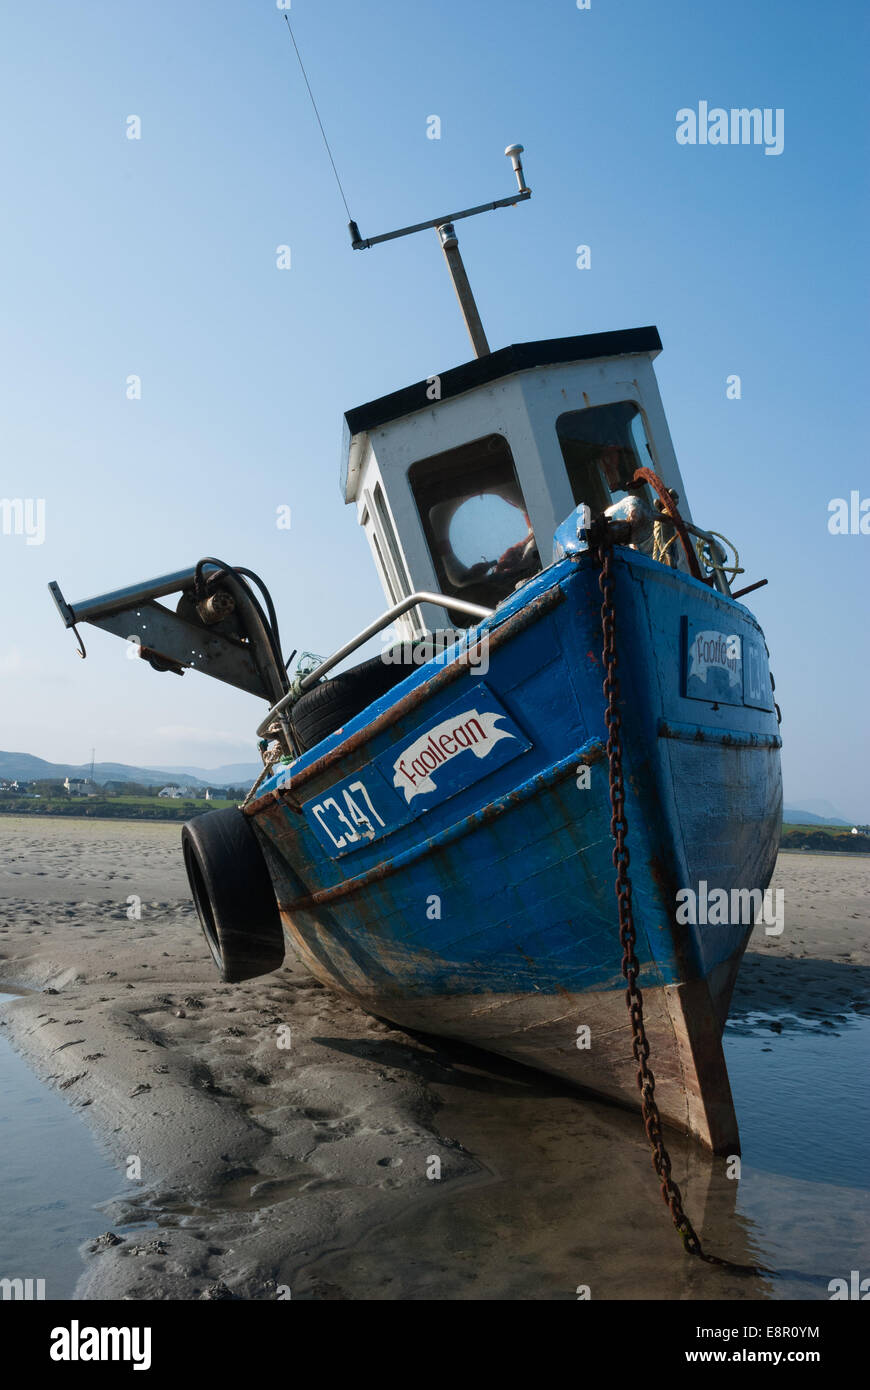 A local fishing boat stranded at low tide in Dunfanaghy Bay, County Donegal, Ireland. - Stock Image